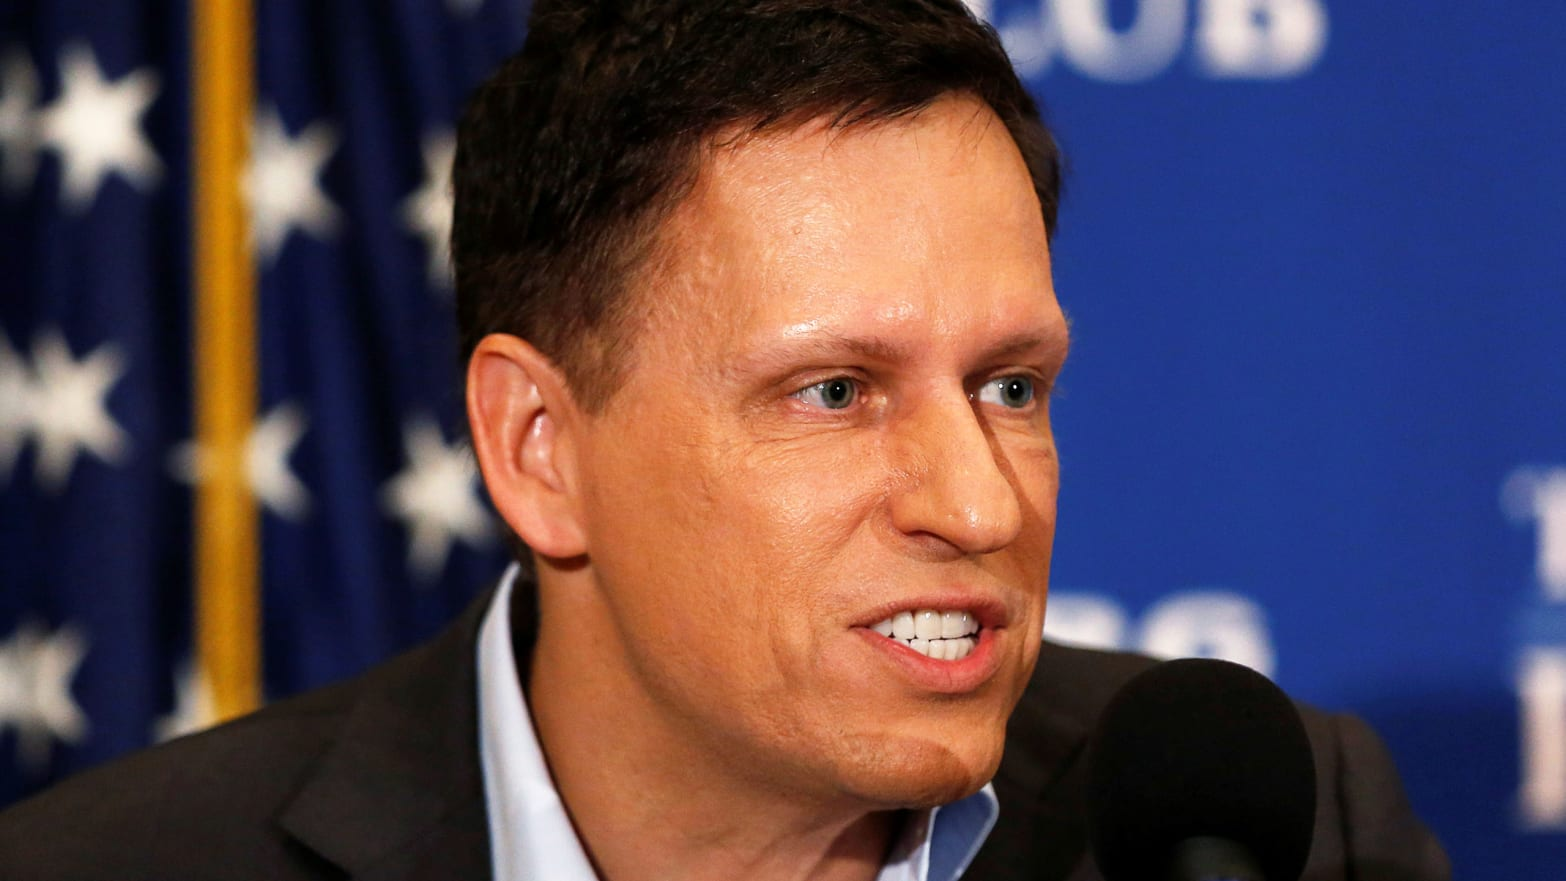 PayPal co-founder and Facebook board member Peter Thiel delivers his speech on the U.S. presidential election at the National Press Club in Washington